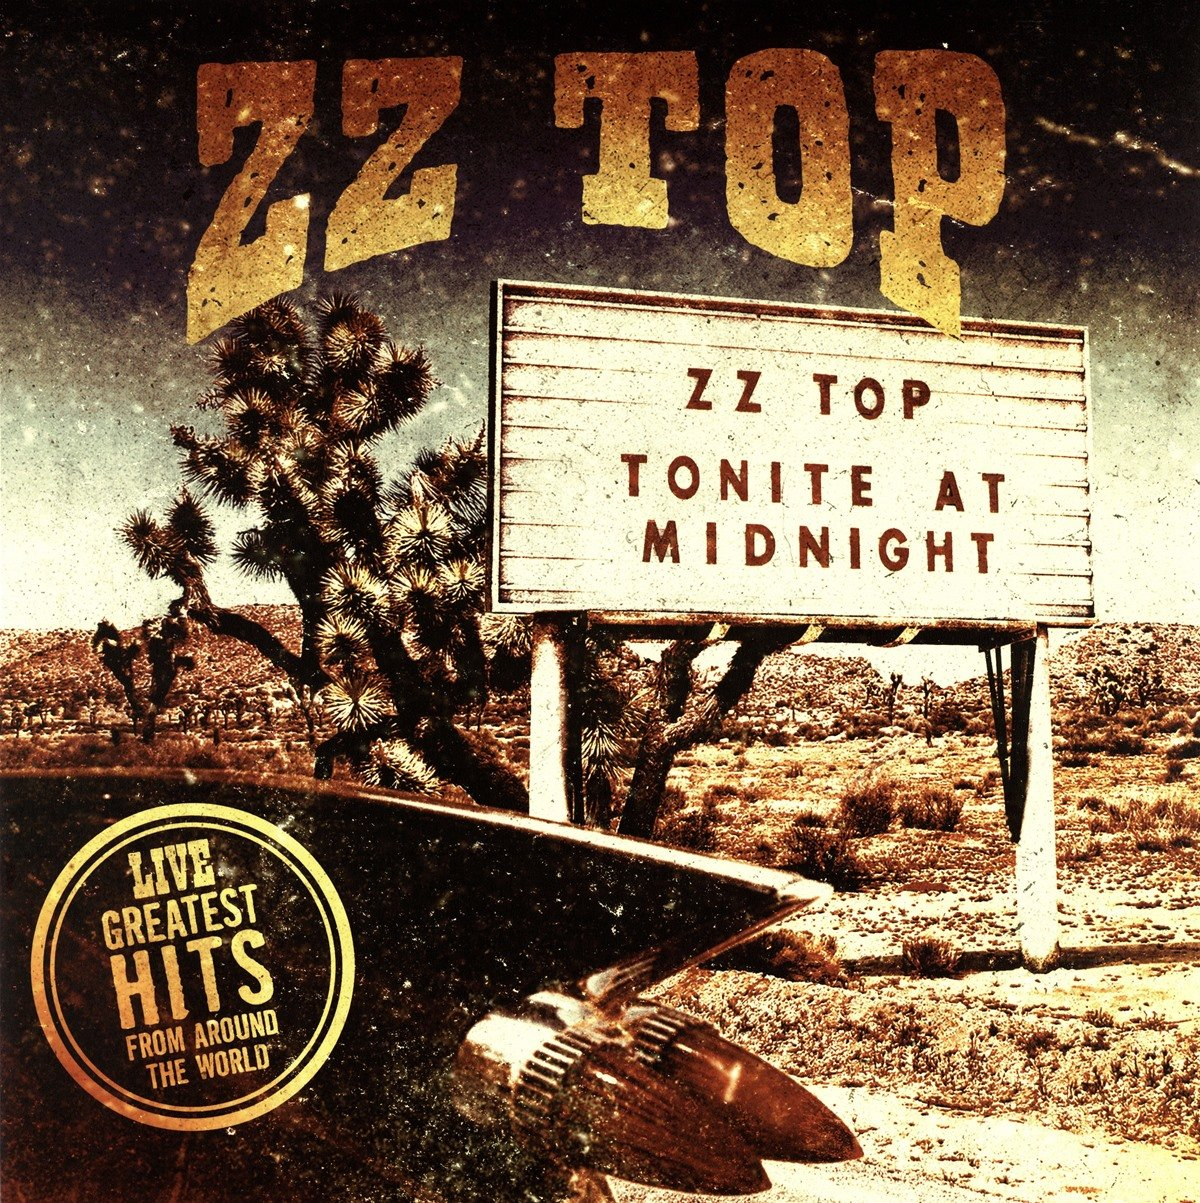 ZZ Top – Live! Greatest Hits From Around The World